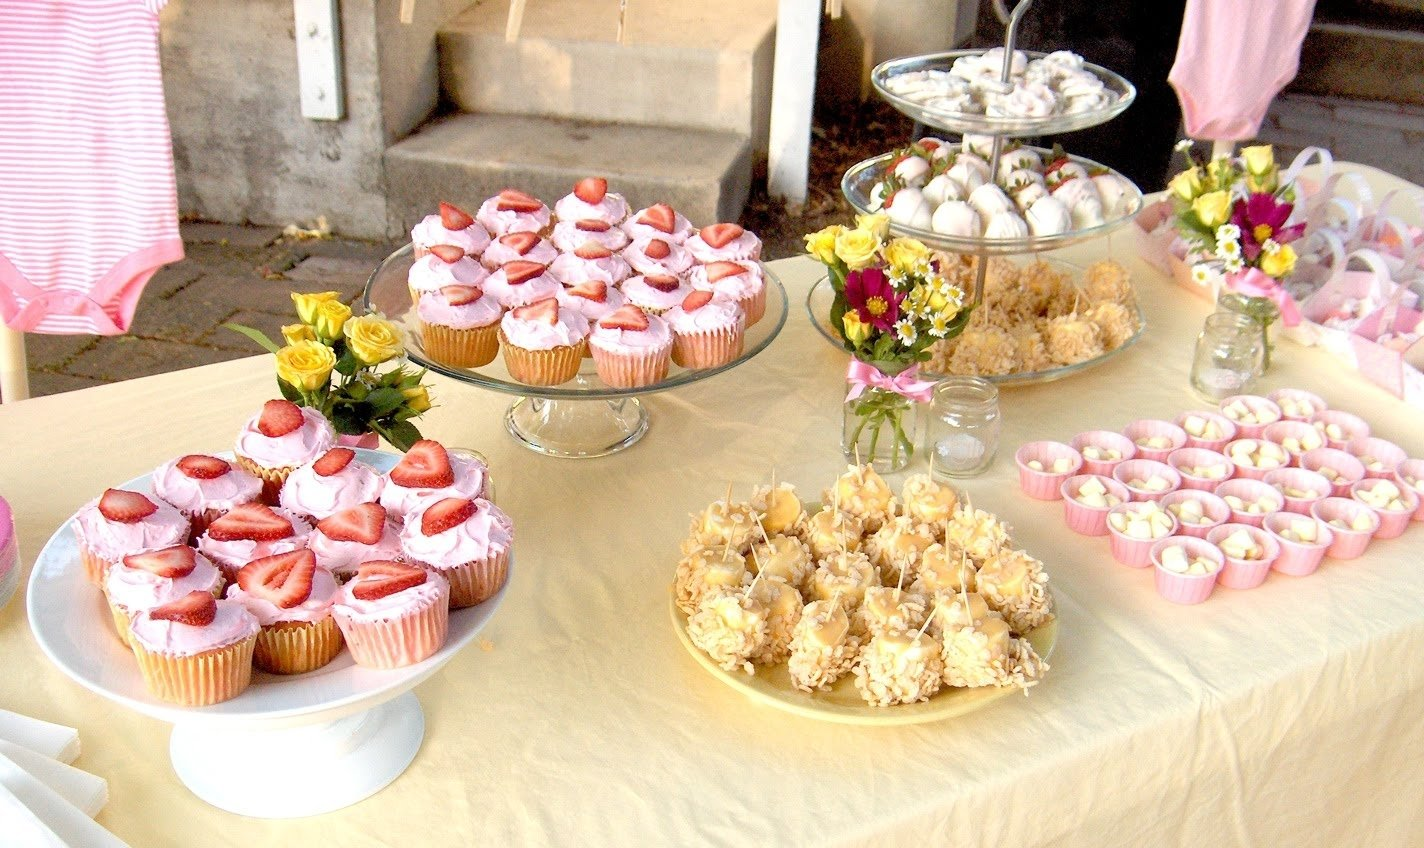 10 Unique Simple Baby Shower Food Ideas simple baby shower food wedding 2020